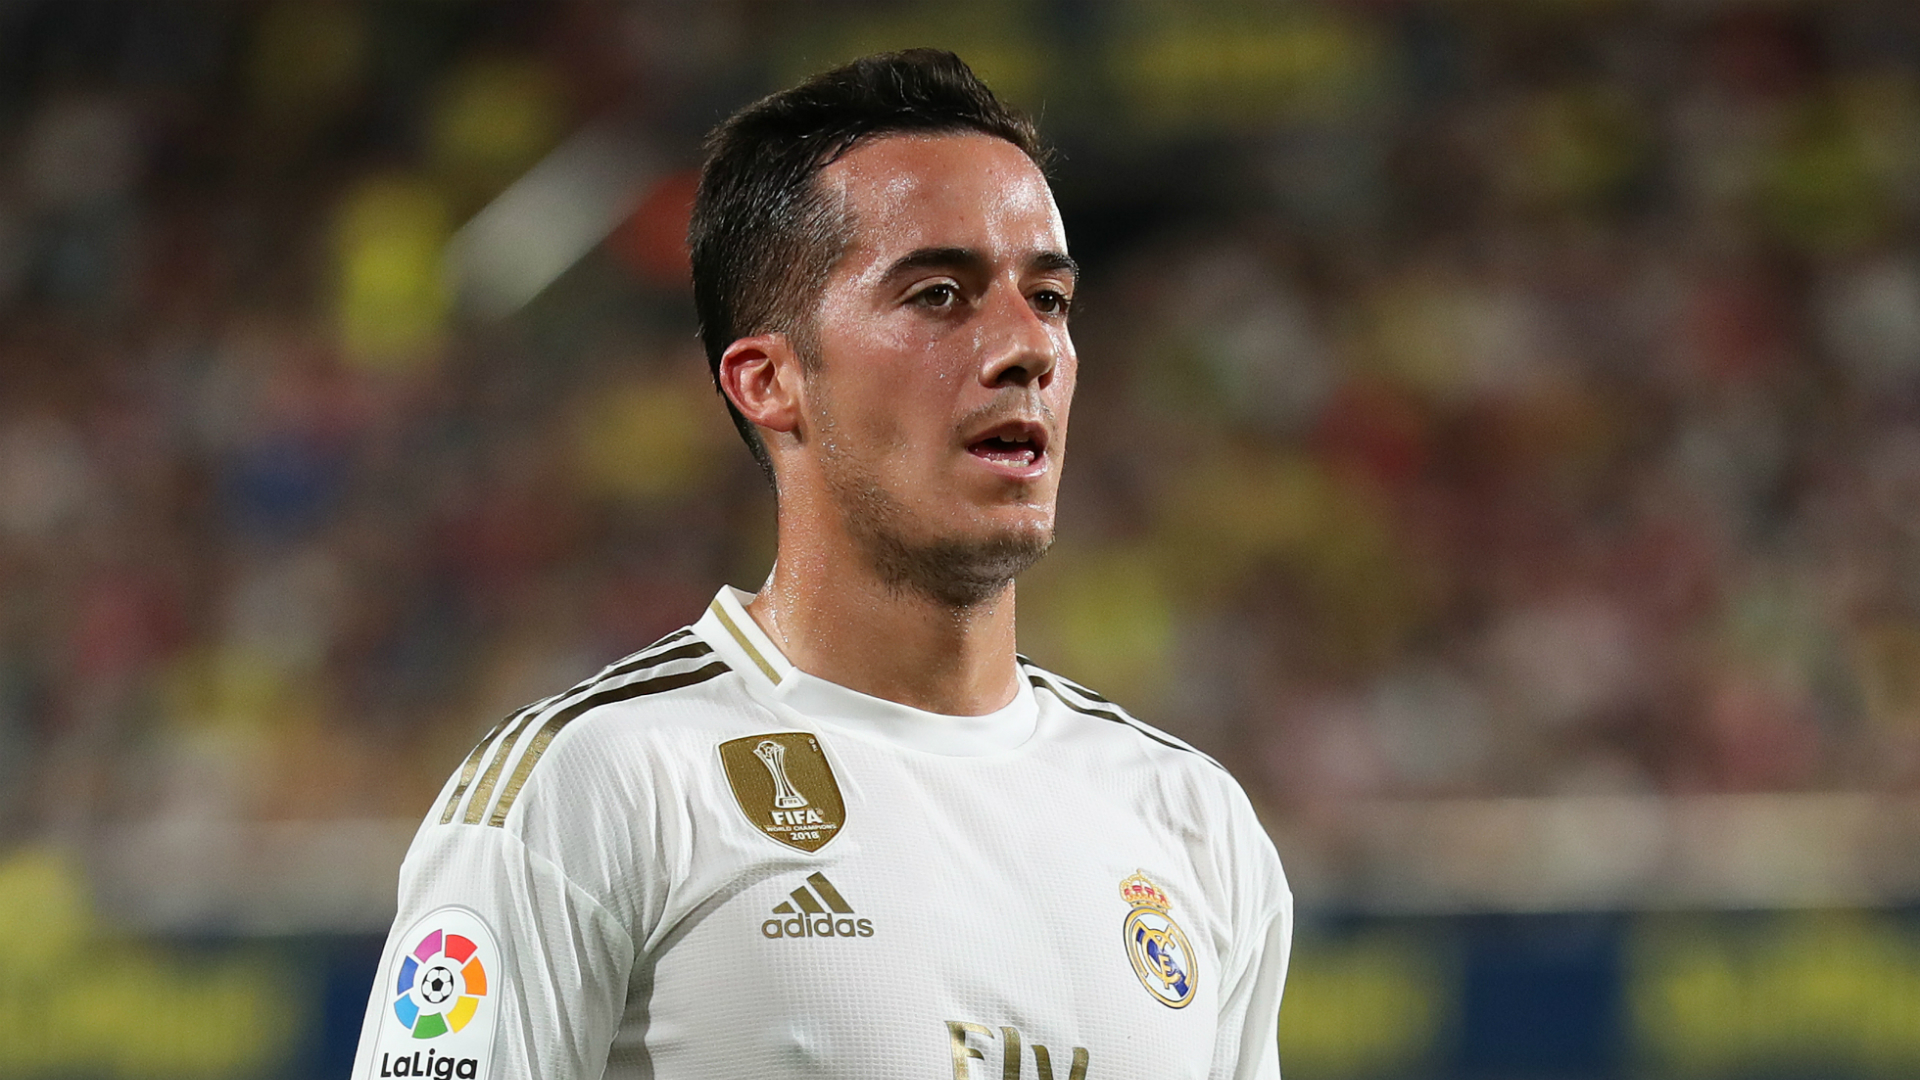 Real Madrid winger Vazquez breaks toe in dumbbell accident